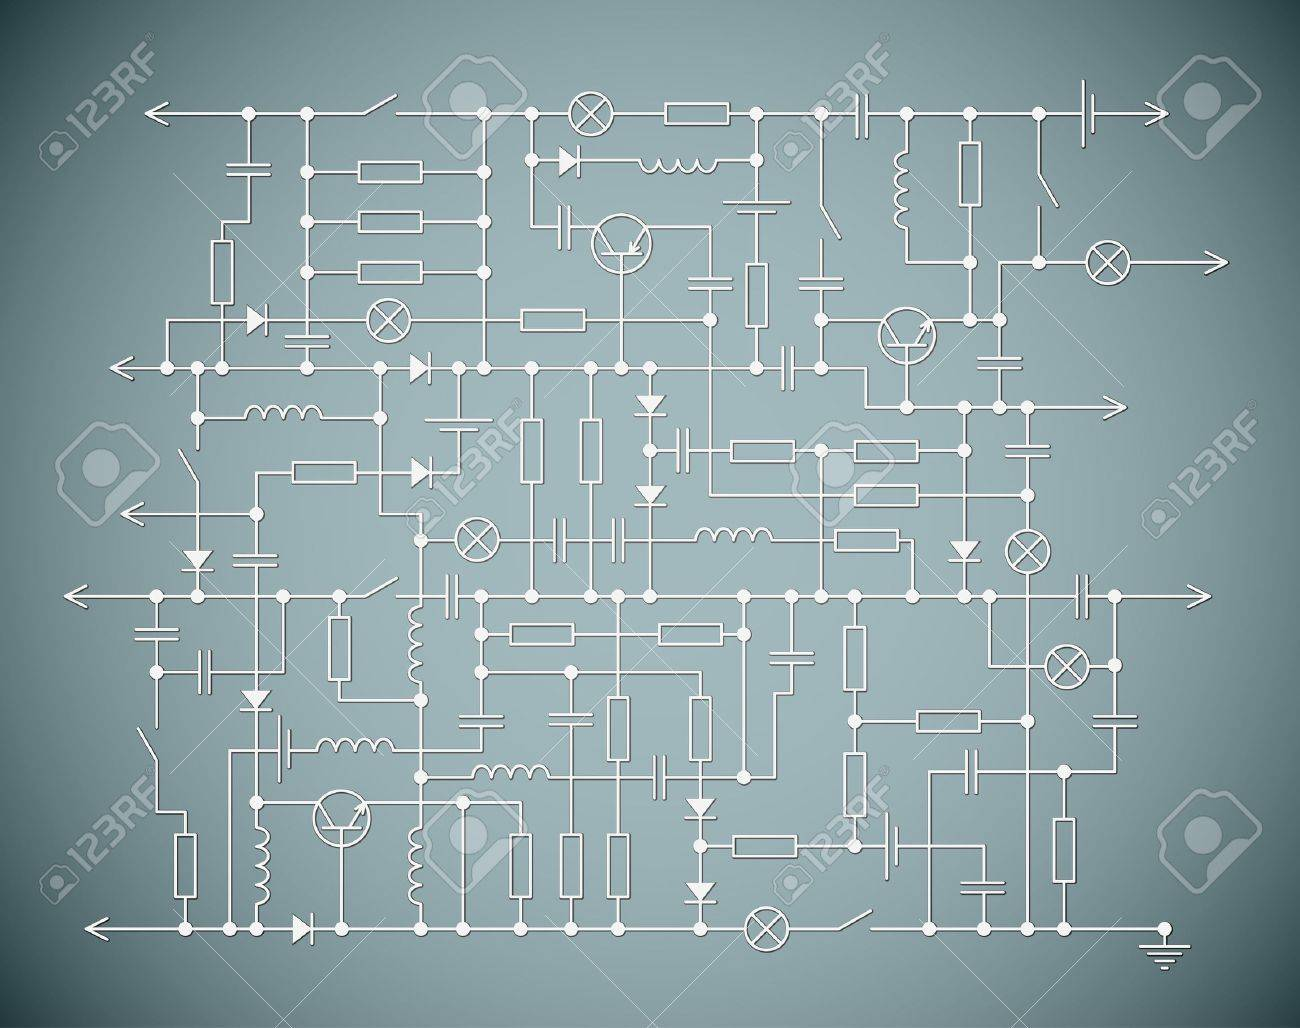 Background With An Electrical Circuit Scheme Royalty Free Cliparts ...